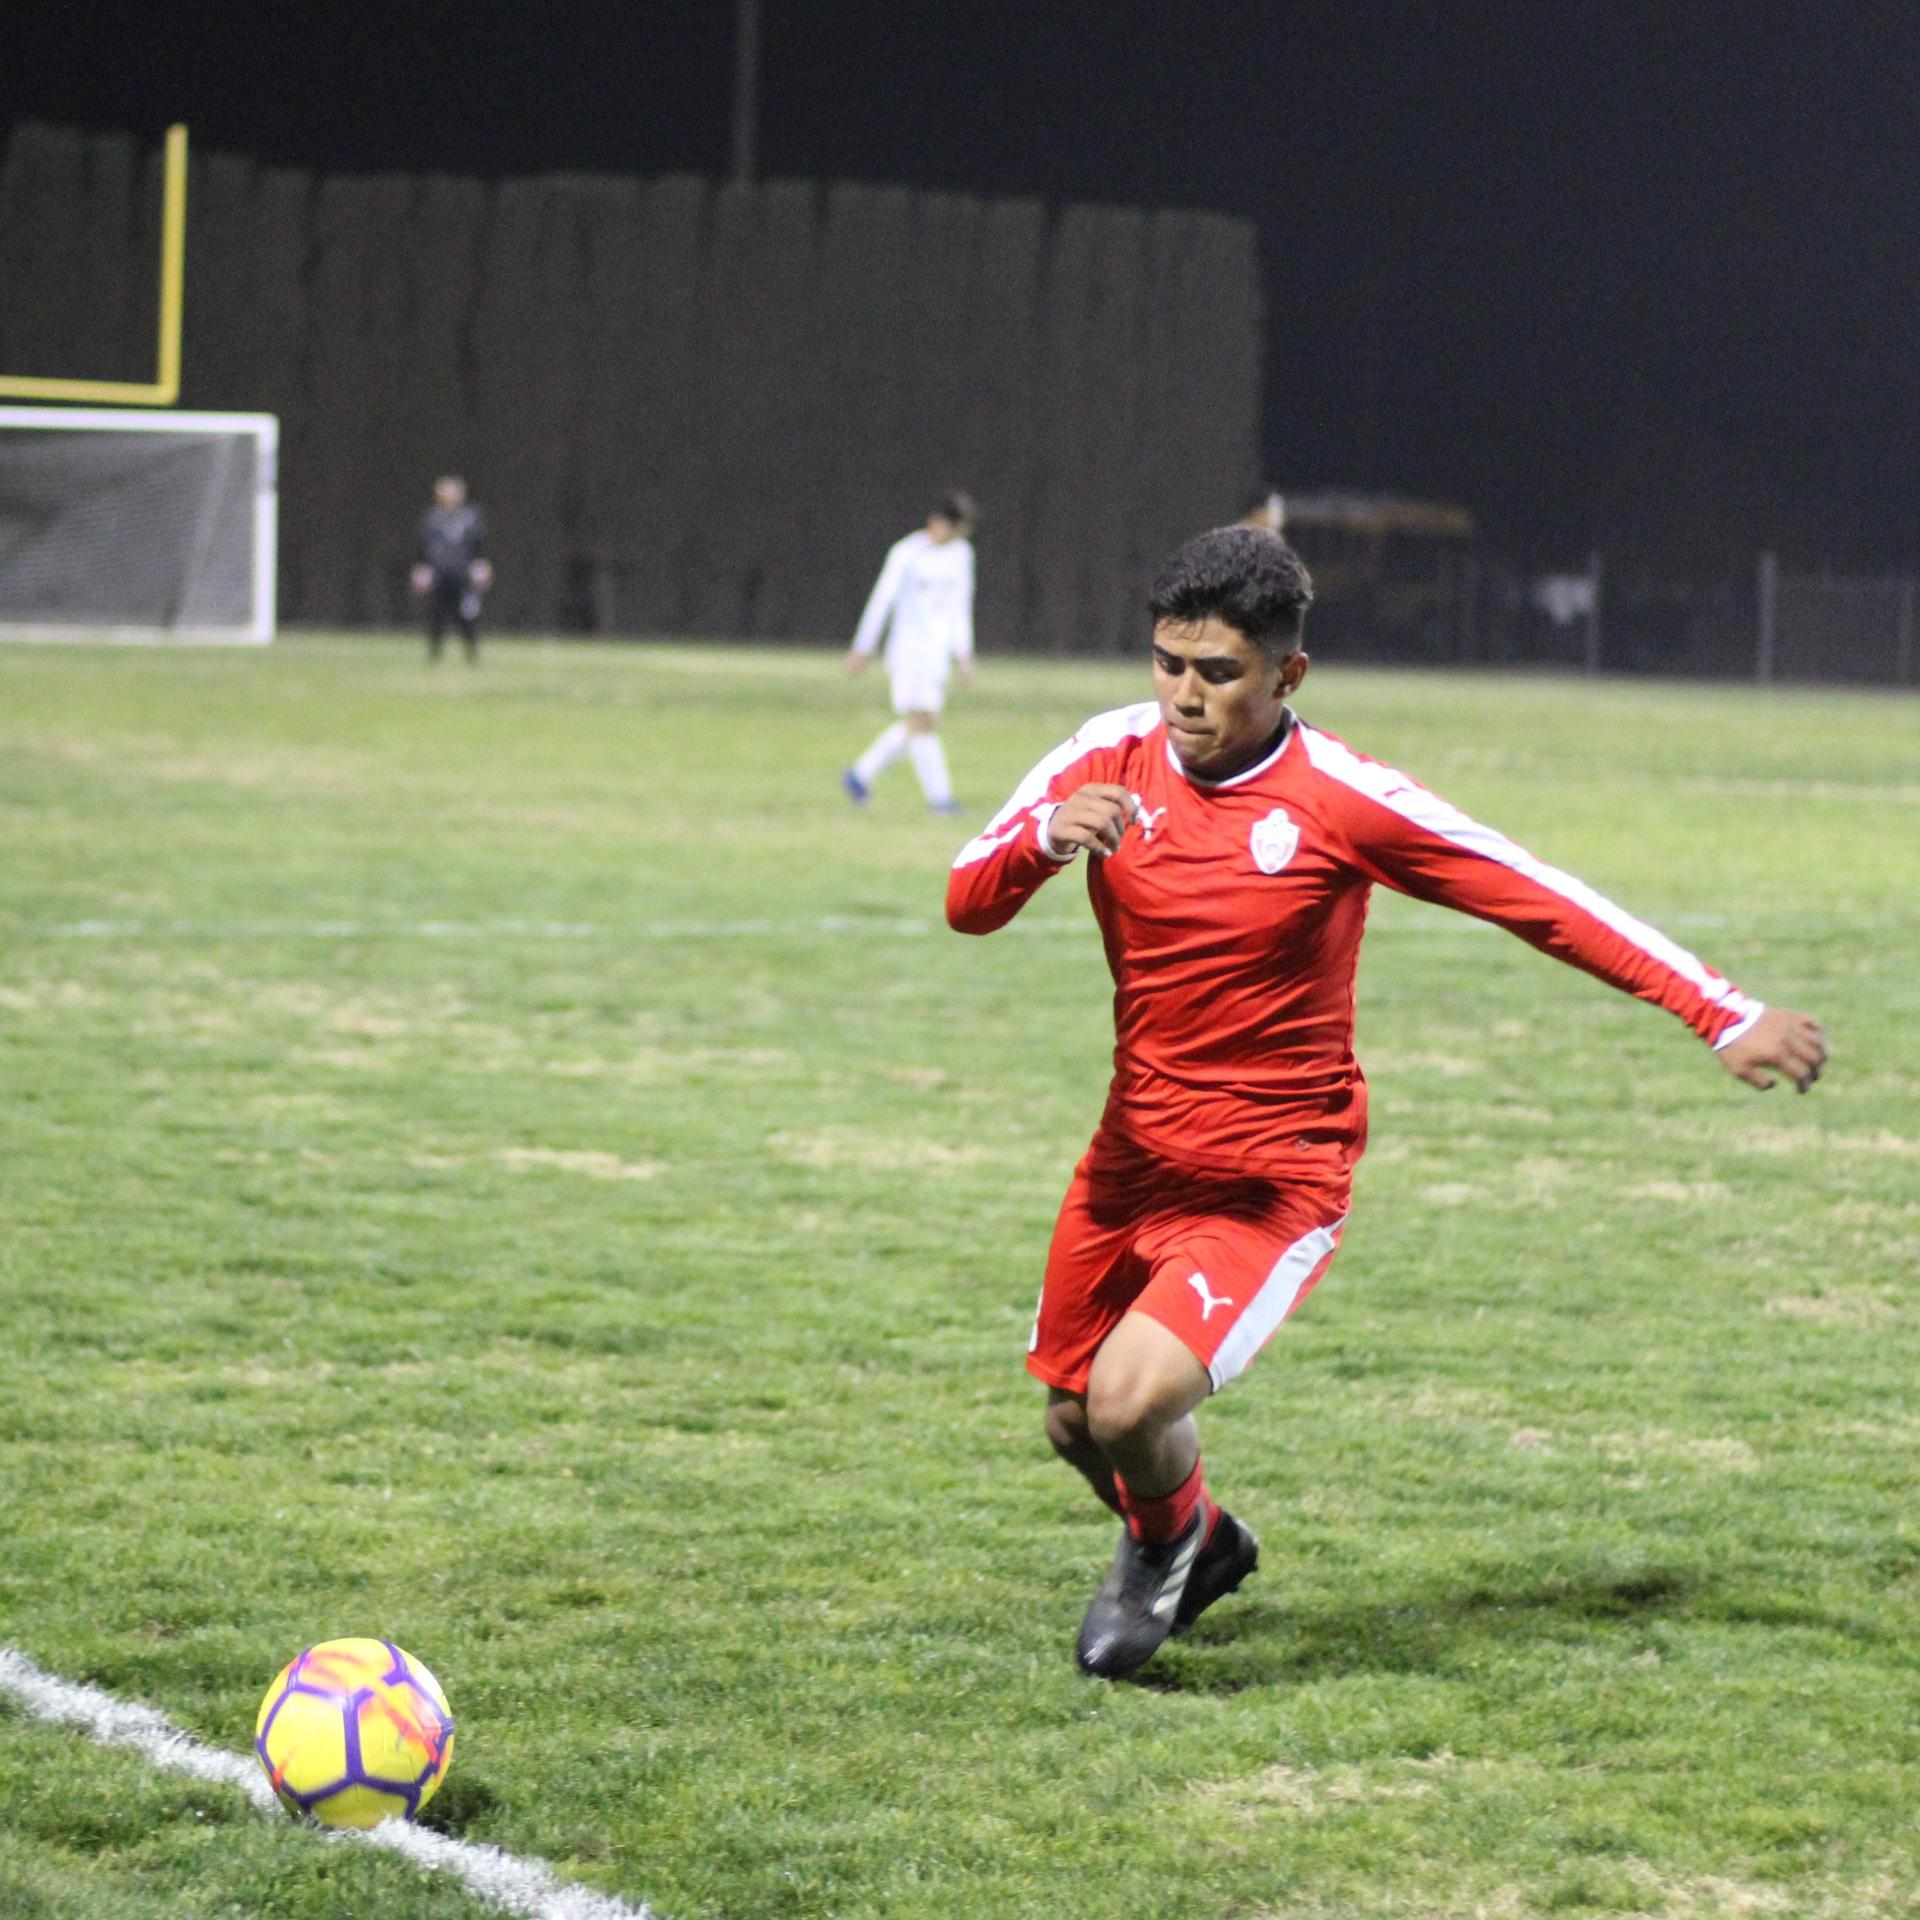 Alejandro Montes Running to the Ball